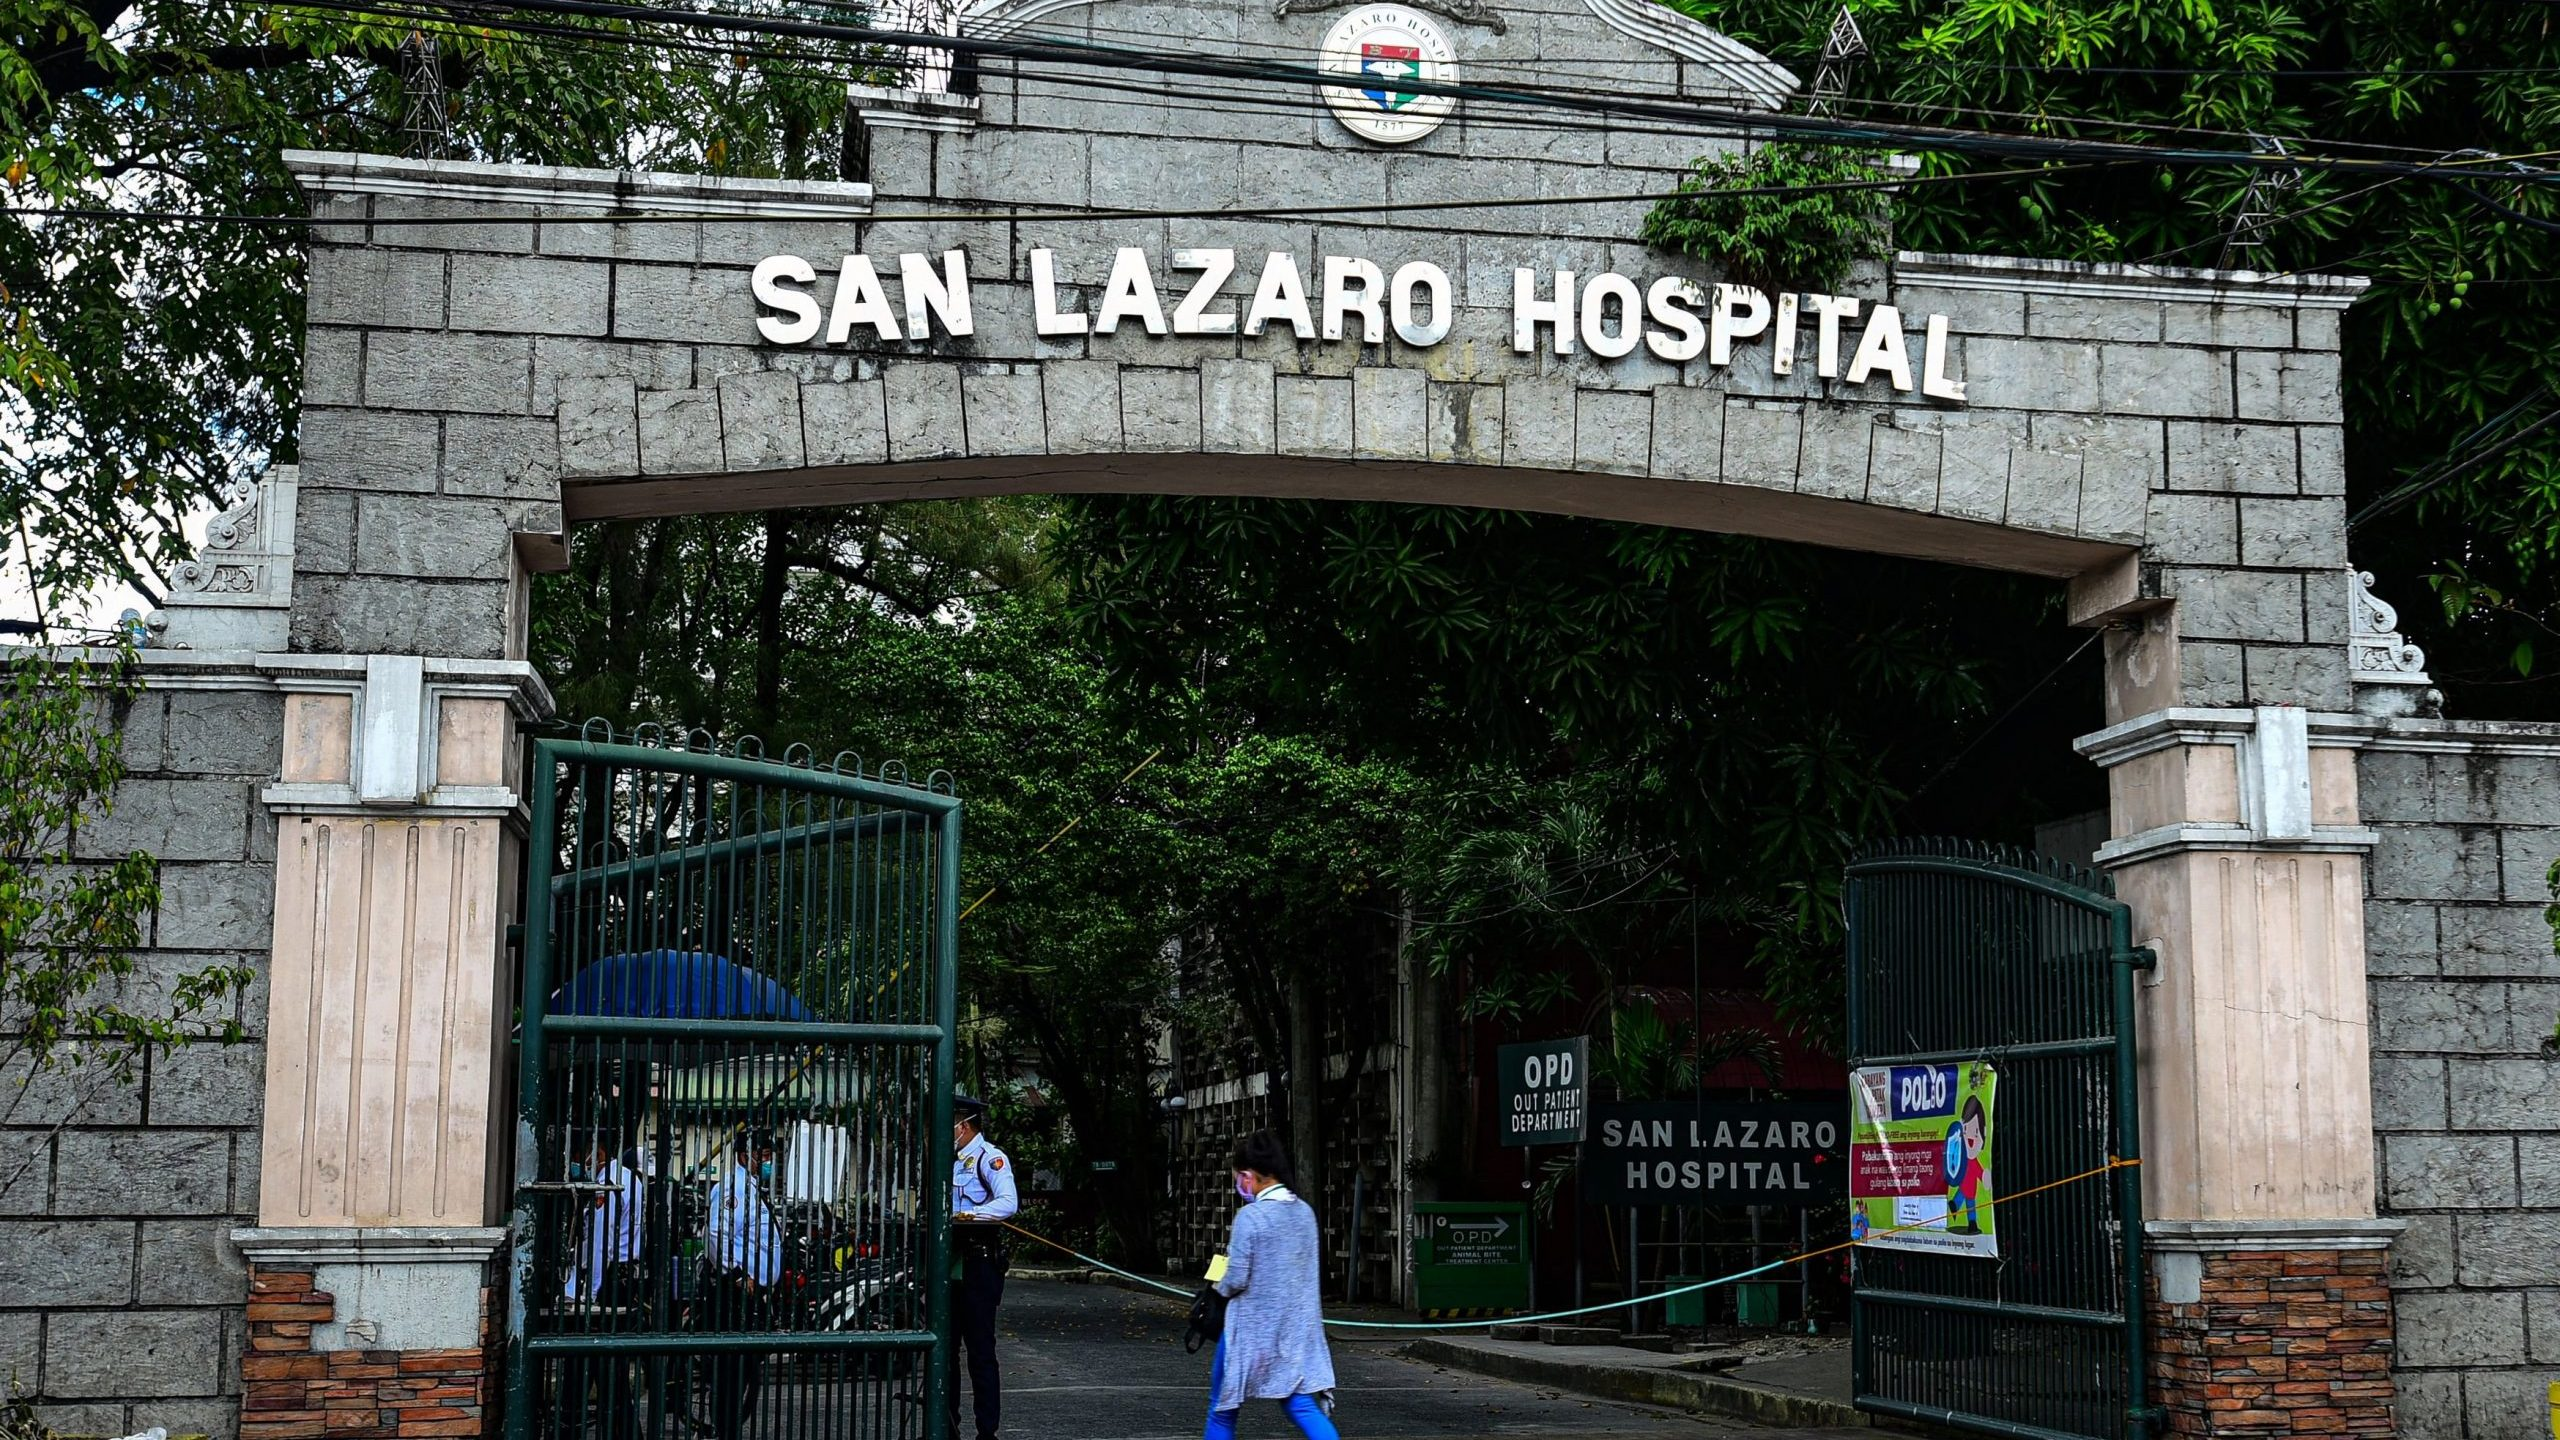 People wearing face masks walk past the main gates of the San Lazaro Hospital in Manila on Feb. 2, 2020. (Credit: MARIA TAN/AFP via Getty Images)